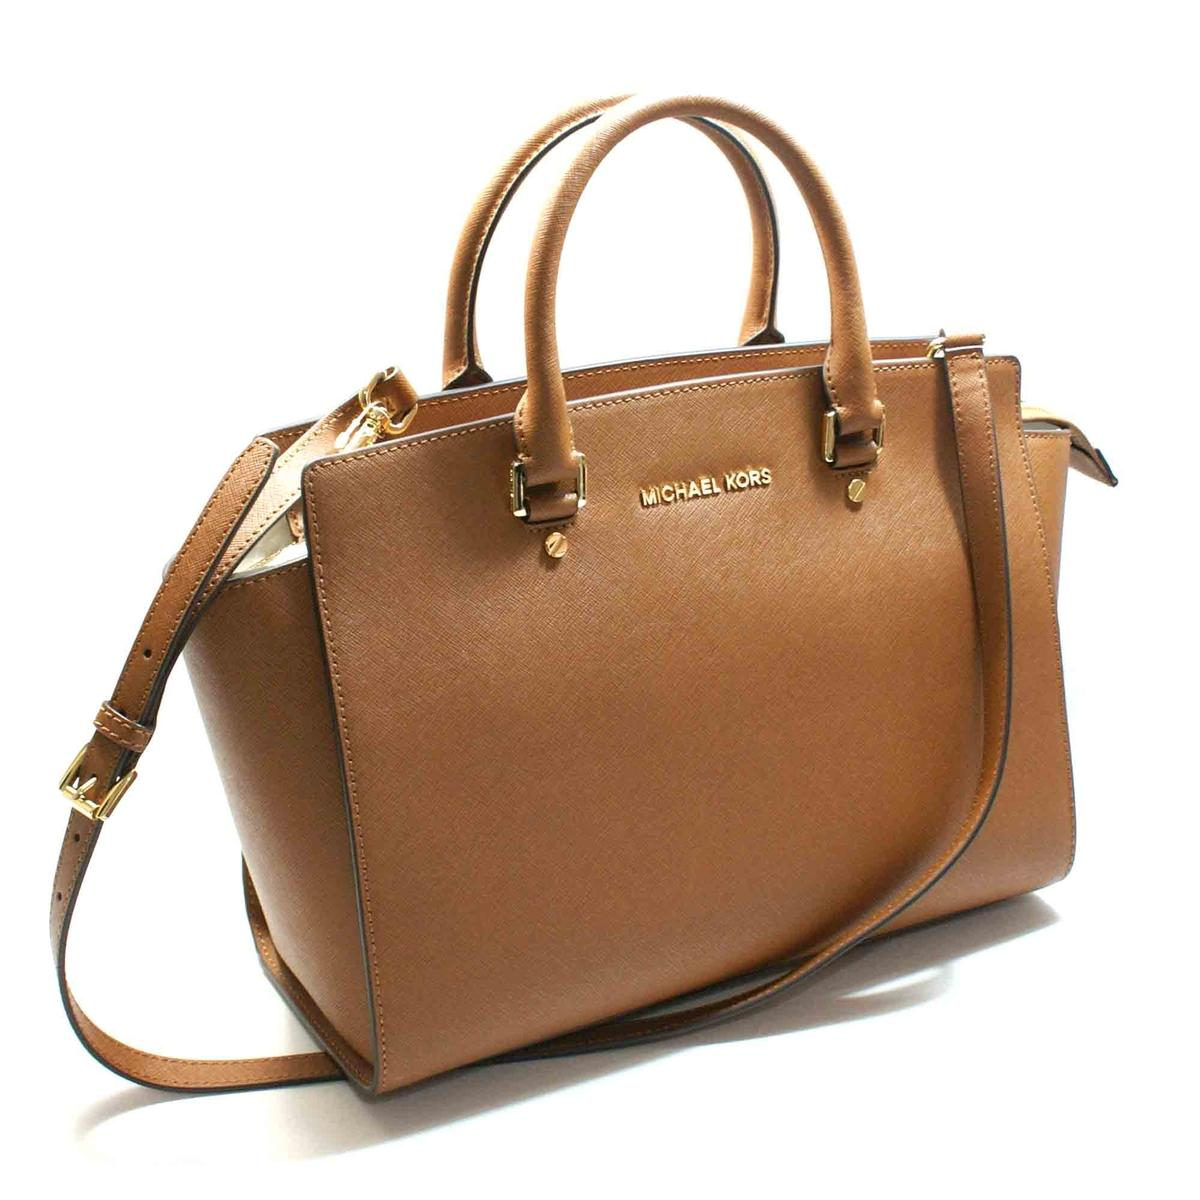 b6c3616bf6538f Are Michael Kors Bags From Real Leather   Stanford Center for ...